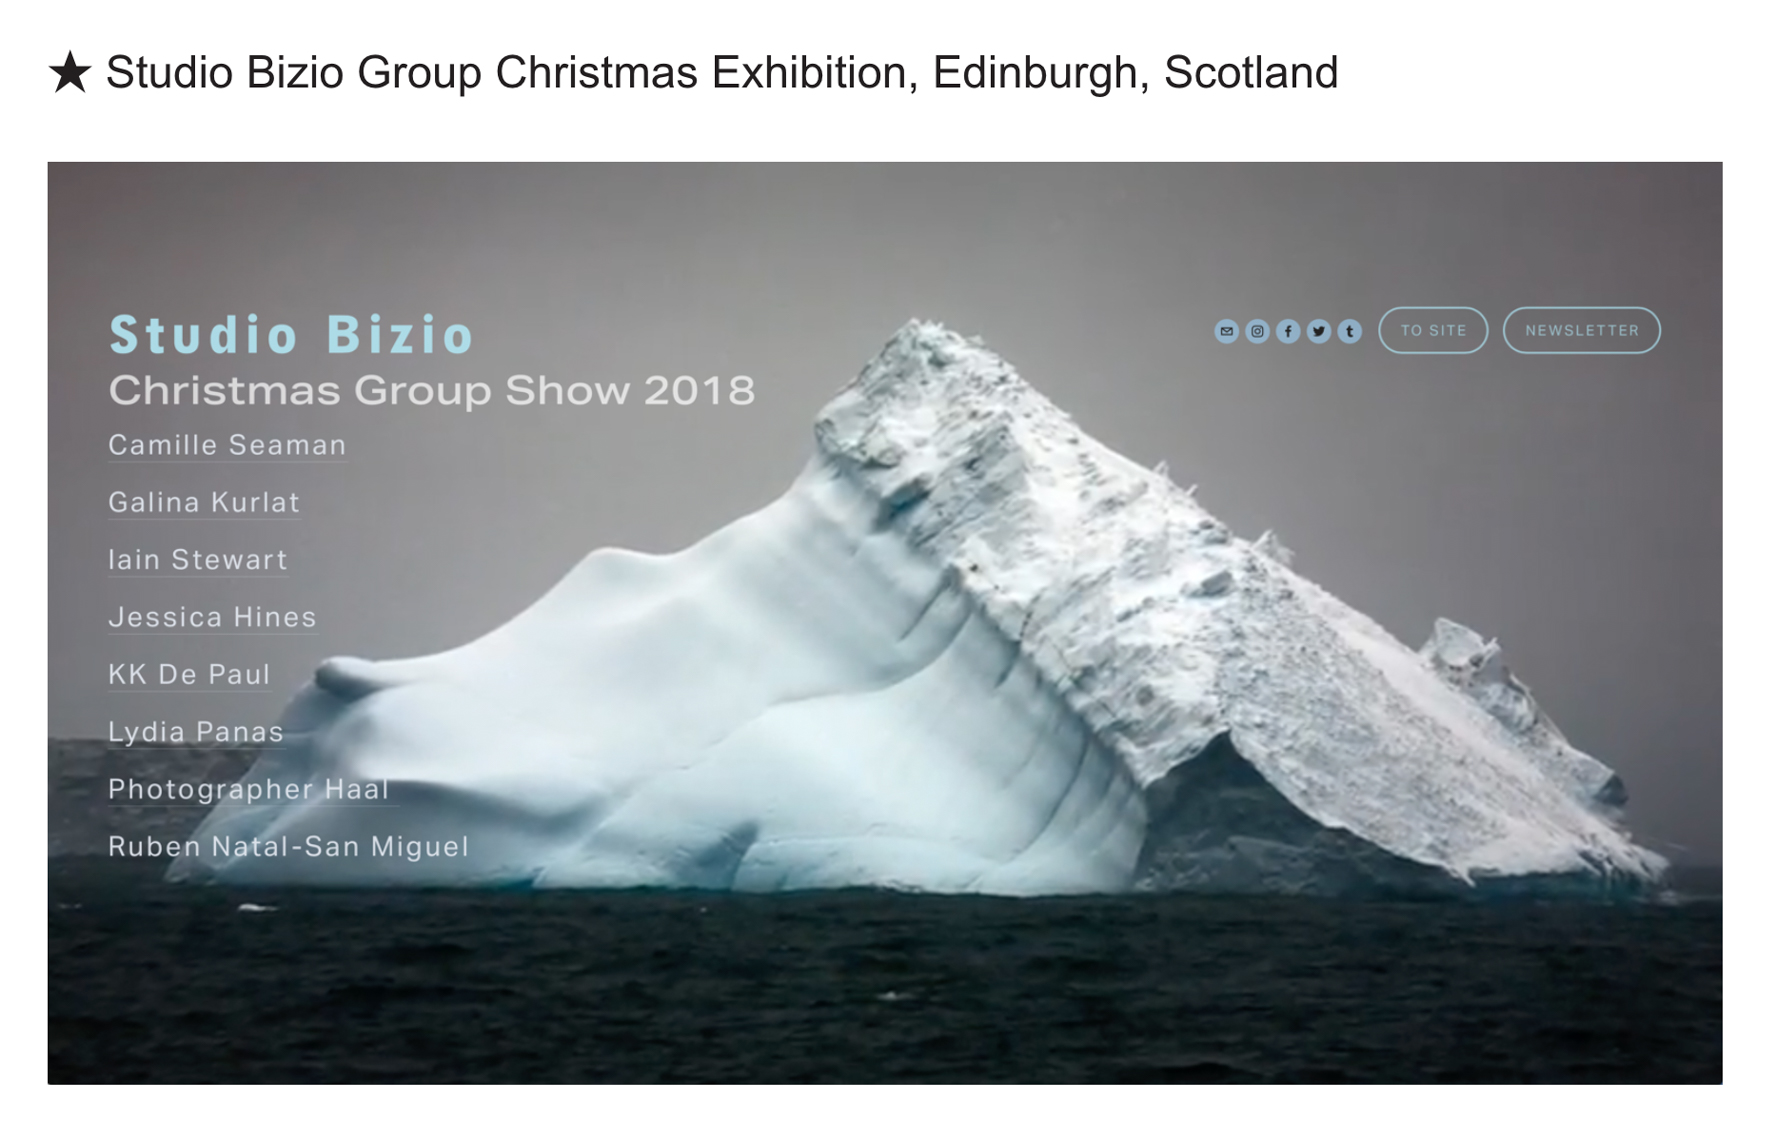 Studio Bizio Group Christmas Exhibition 2018